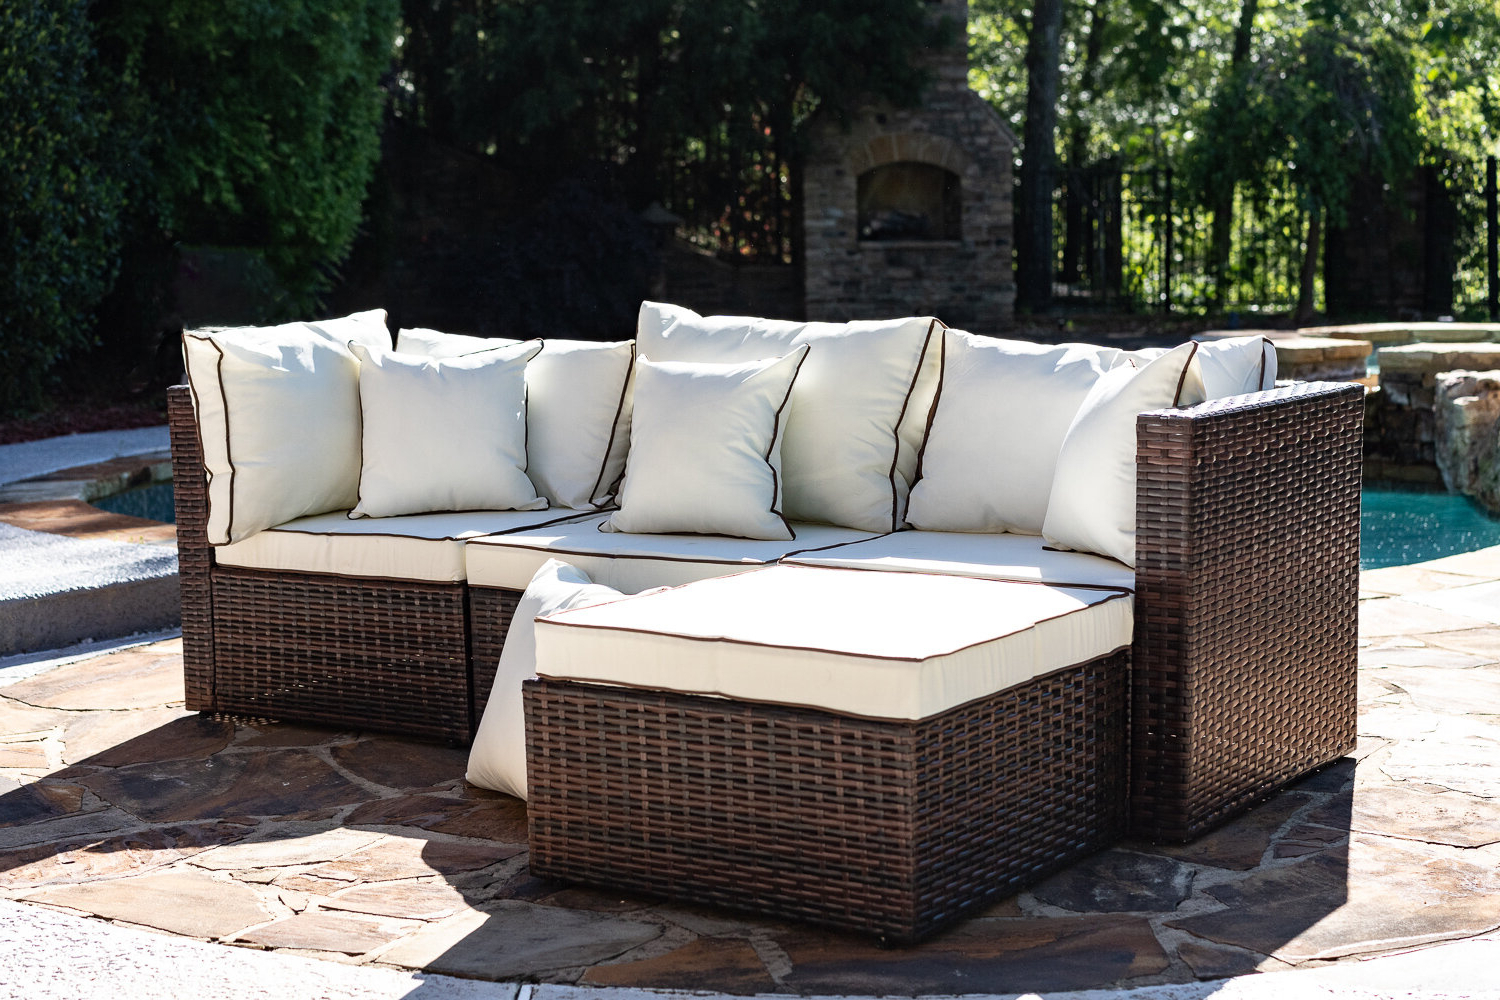 Burruss Patio Sectional With Cushions For Well Known Stockwell Patio Sofas With Cushions (View 2 of 20)